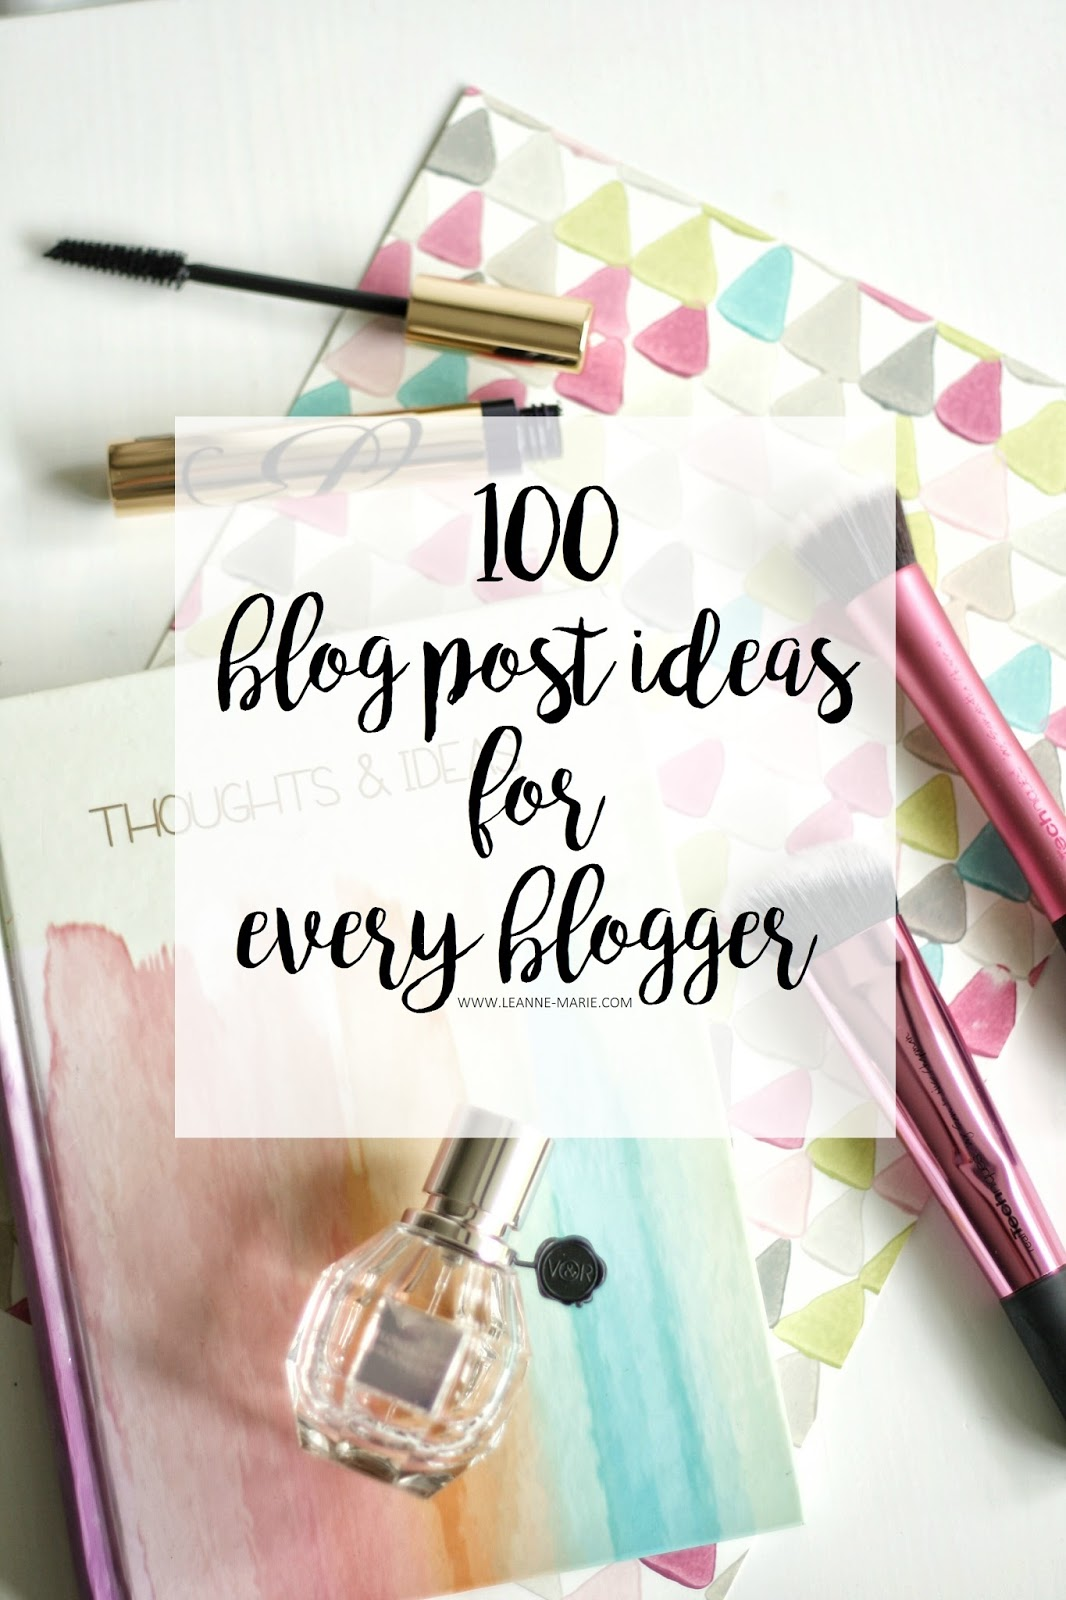 100 BLOG POST IDEAS PINTEREST BLOGGER